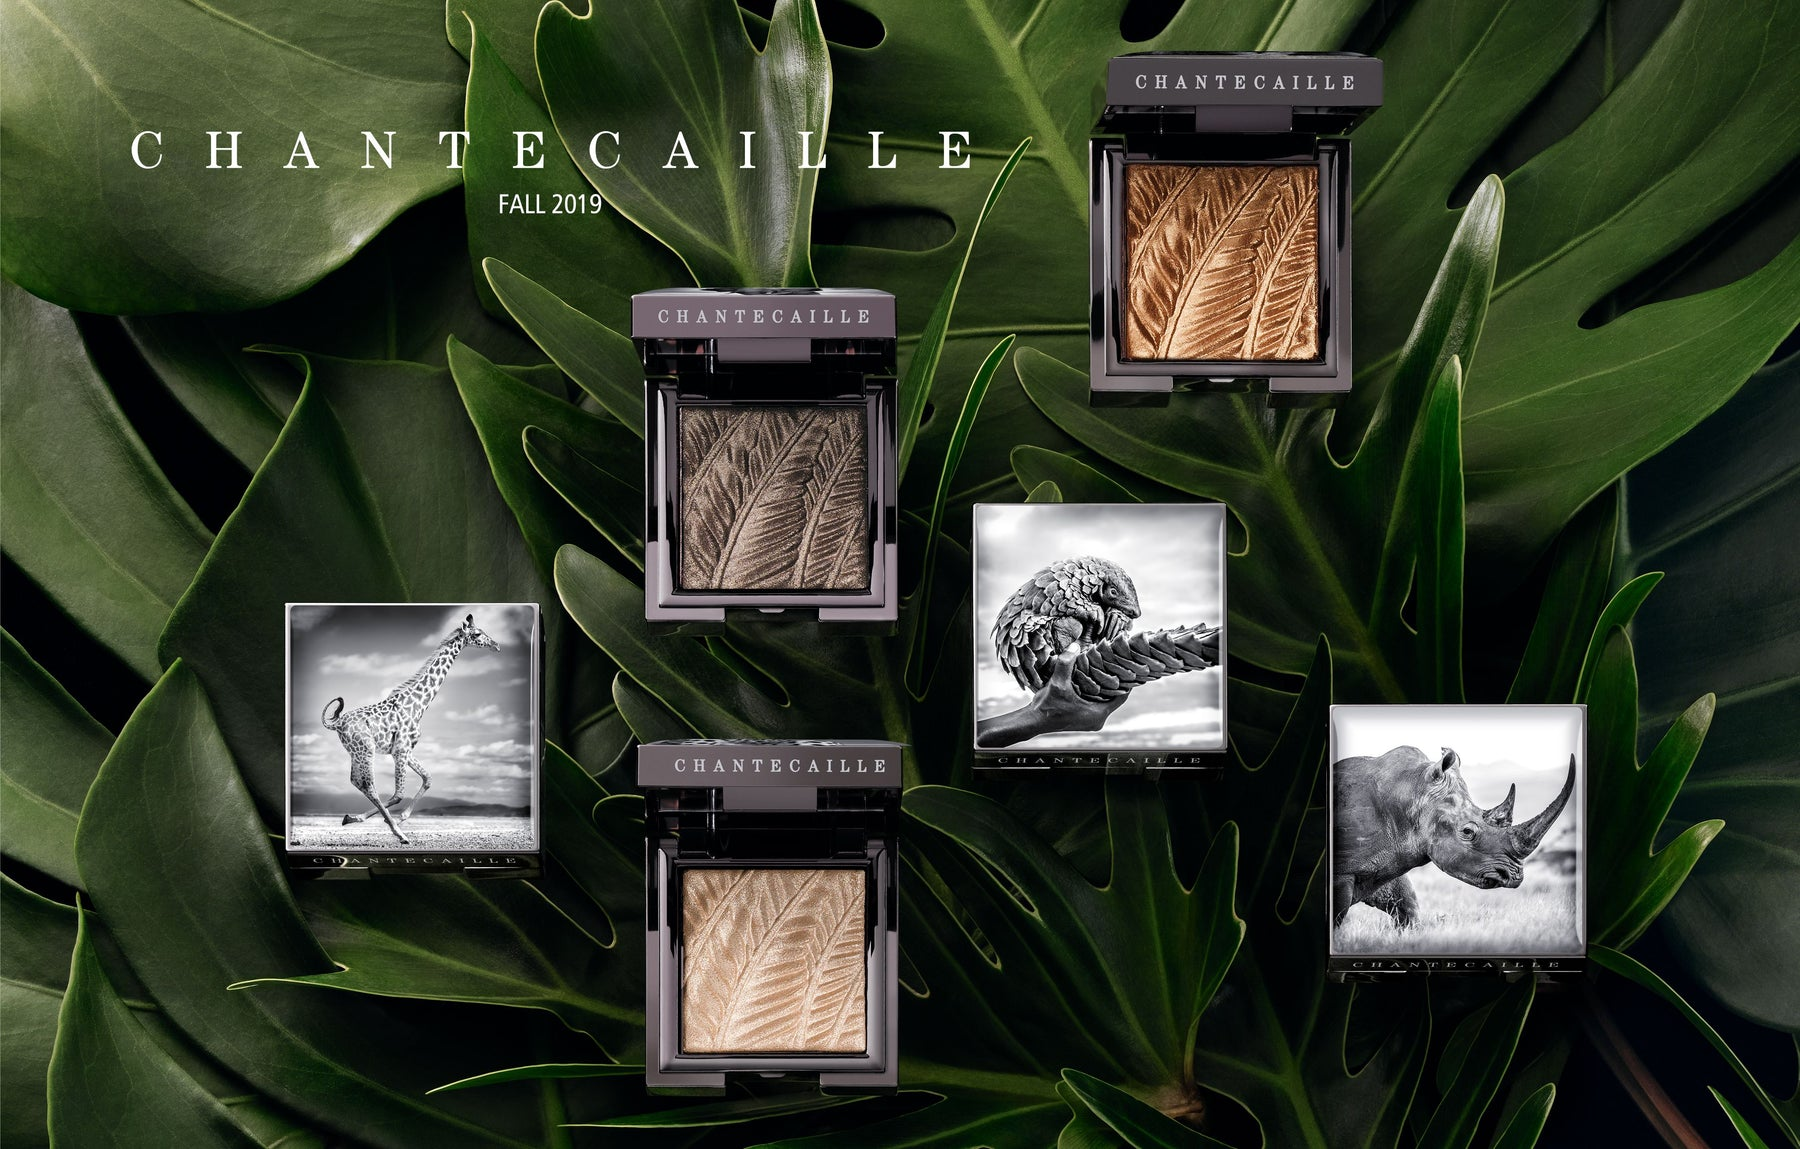 Beauty shot top view of a selection of Chantecaille's Fall 2019 Collection of Luminiescent Eye Shades shown open and closed palettes with African animal graphics with green leaves in the background.